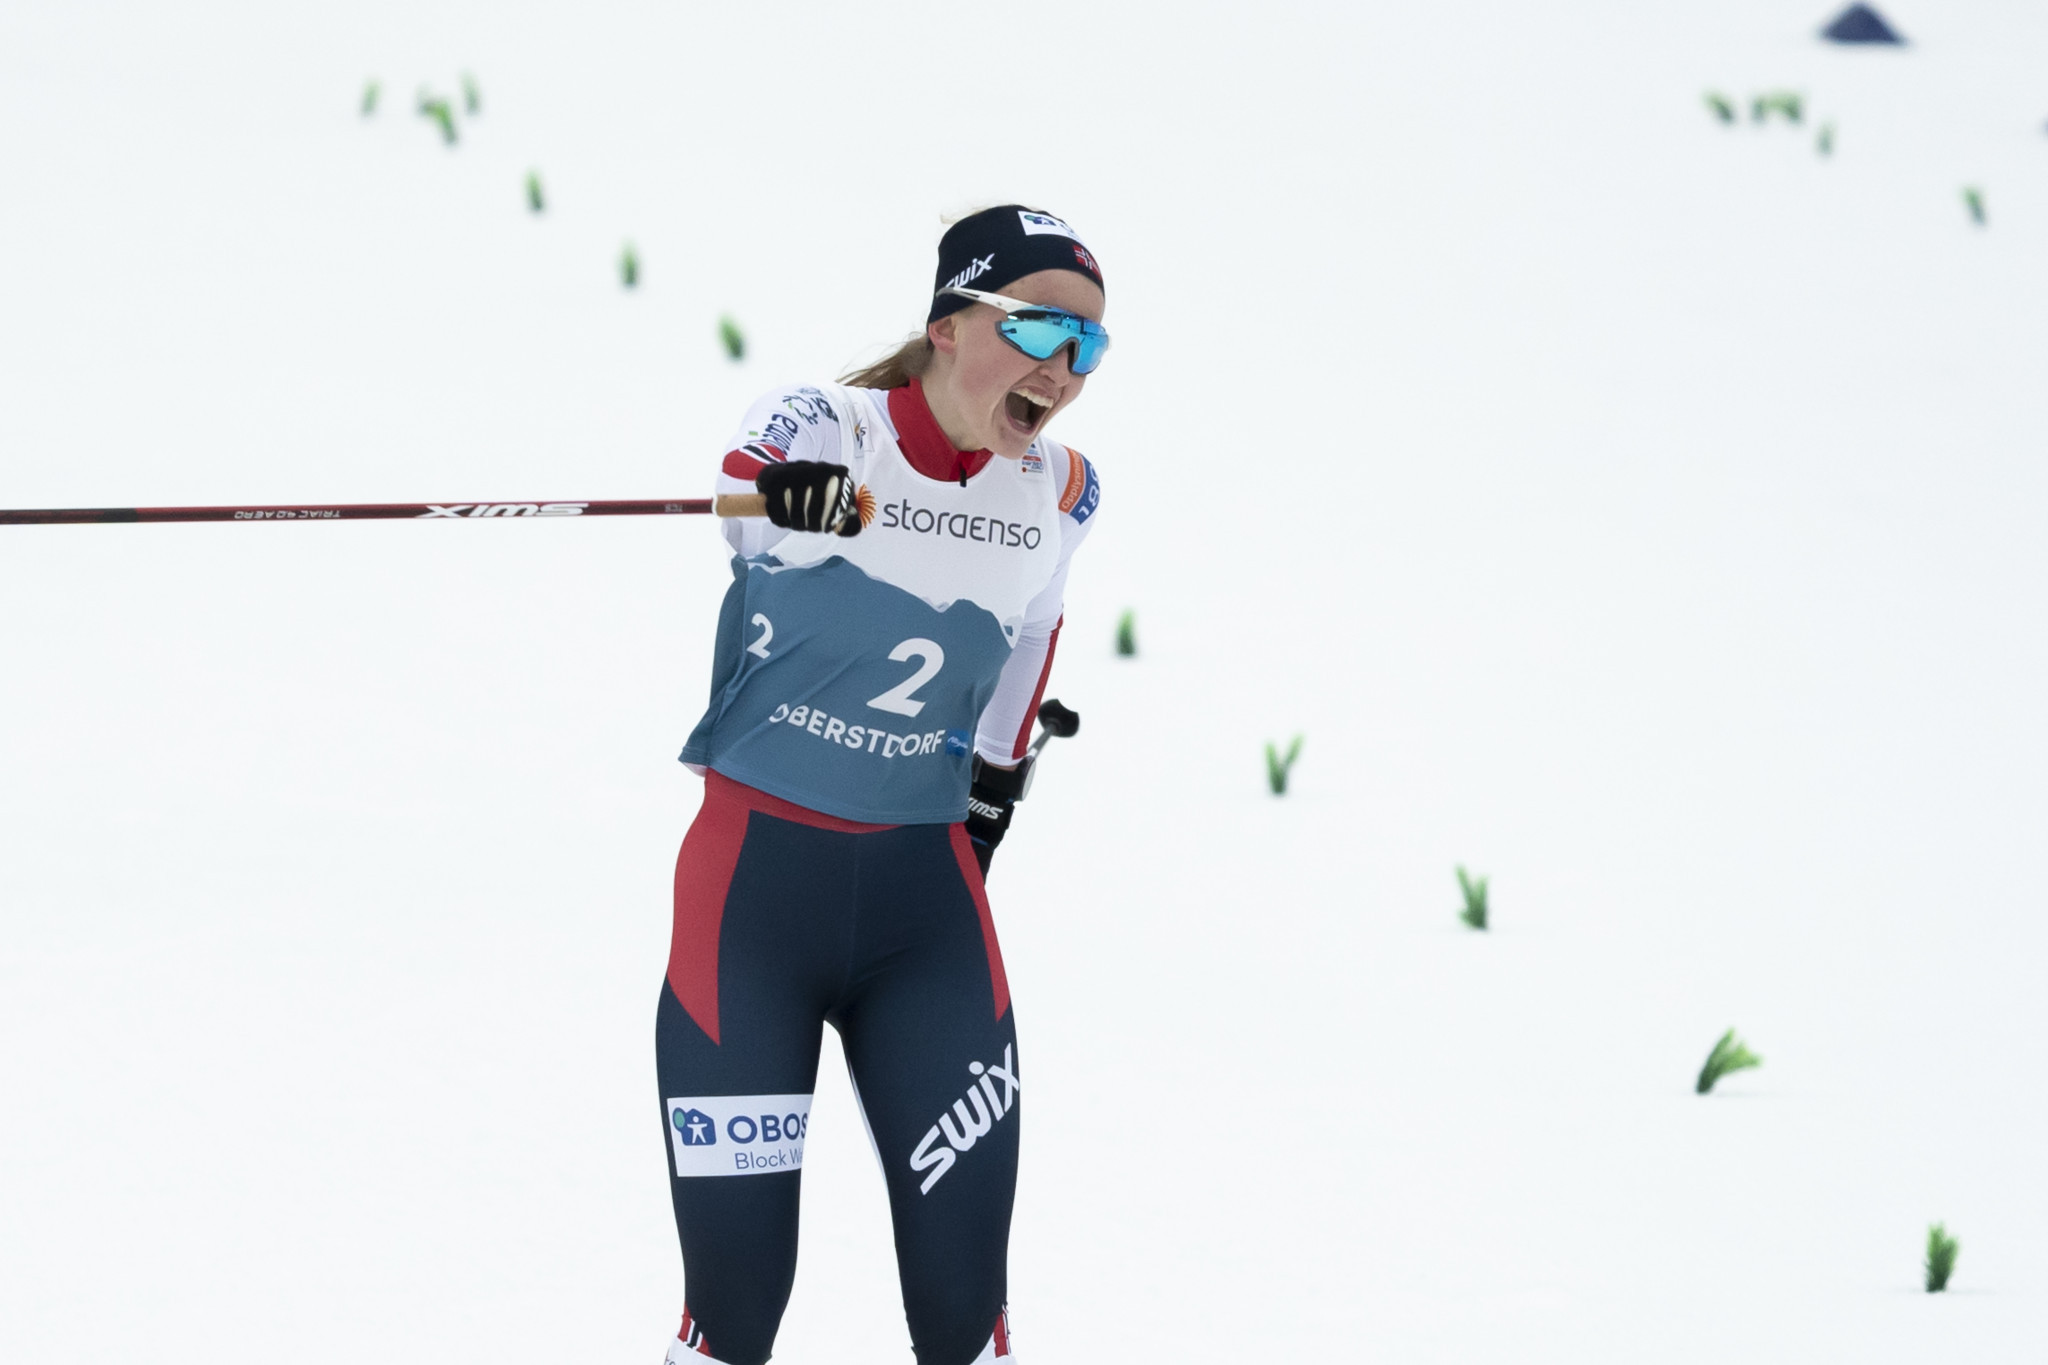 Hansen crowned first women's Nordic combined world champion in Oberstdorf